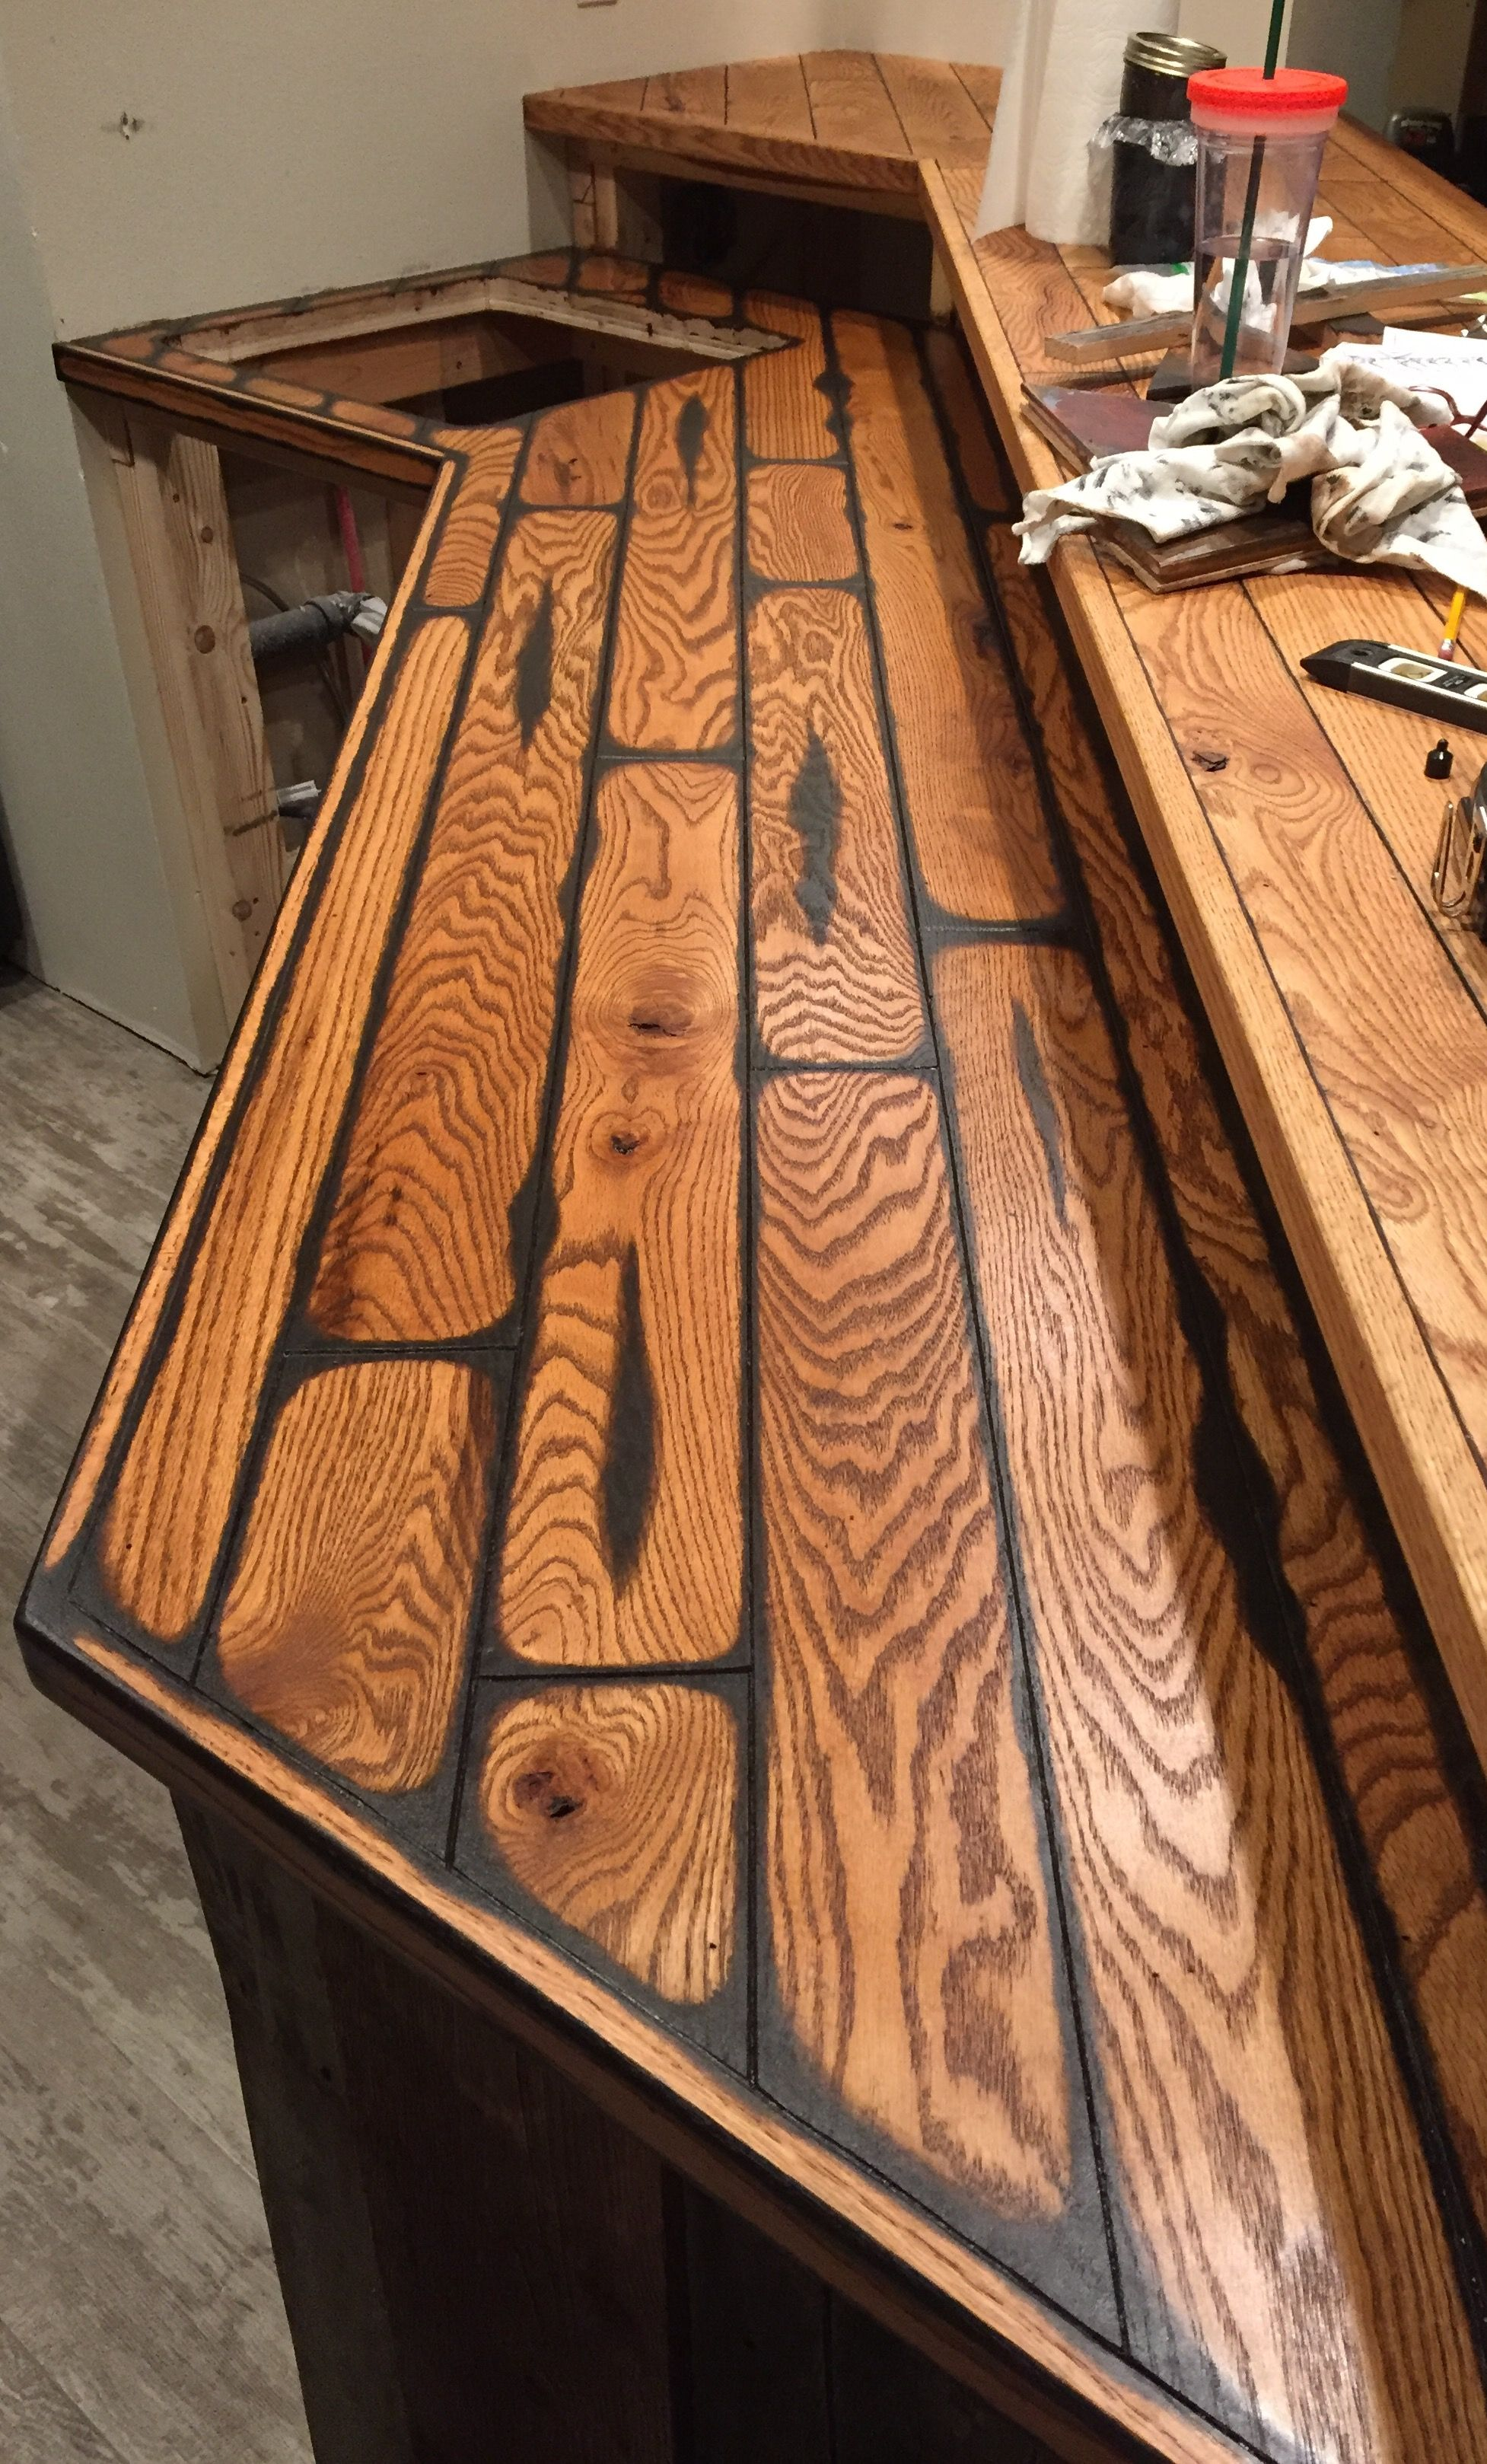 Ordinaire Oak Bar Top Second Coat Of Stain Over Glaze